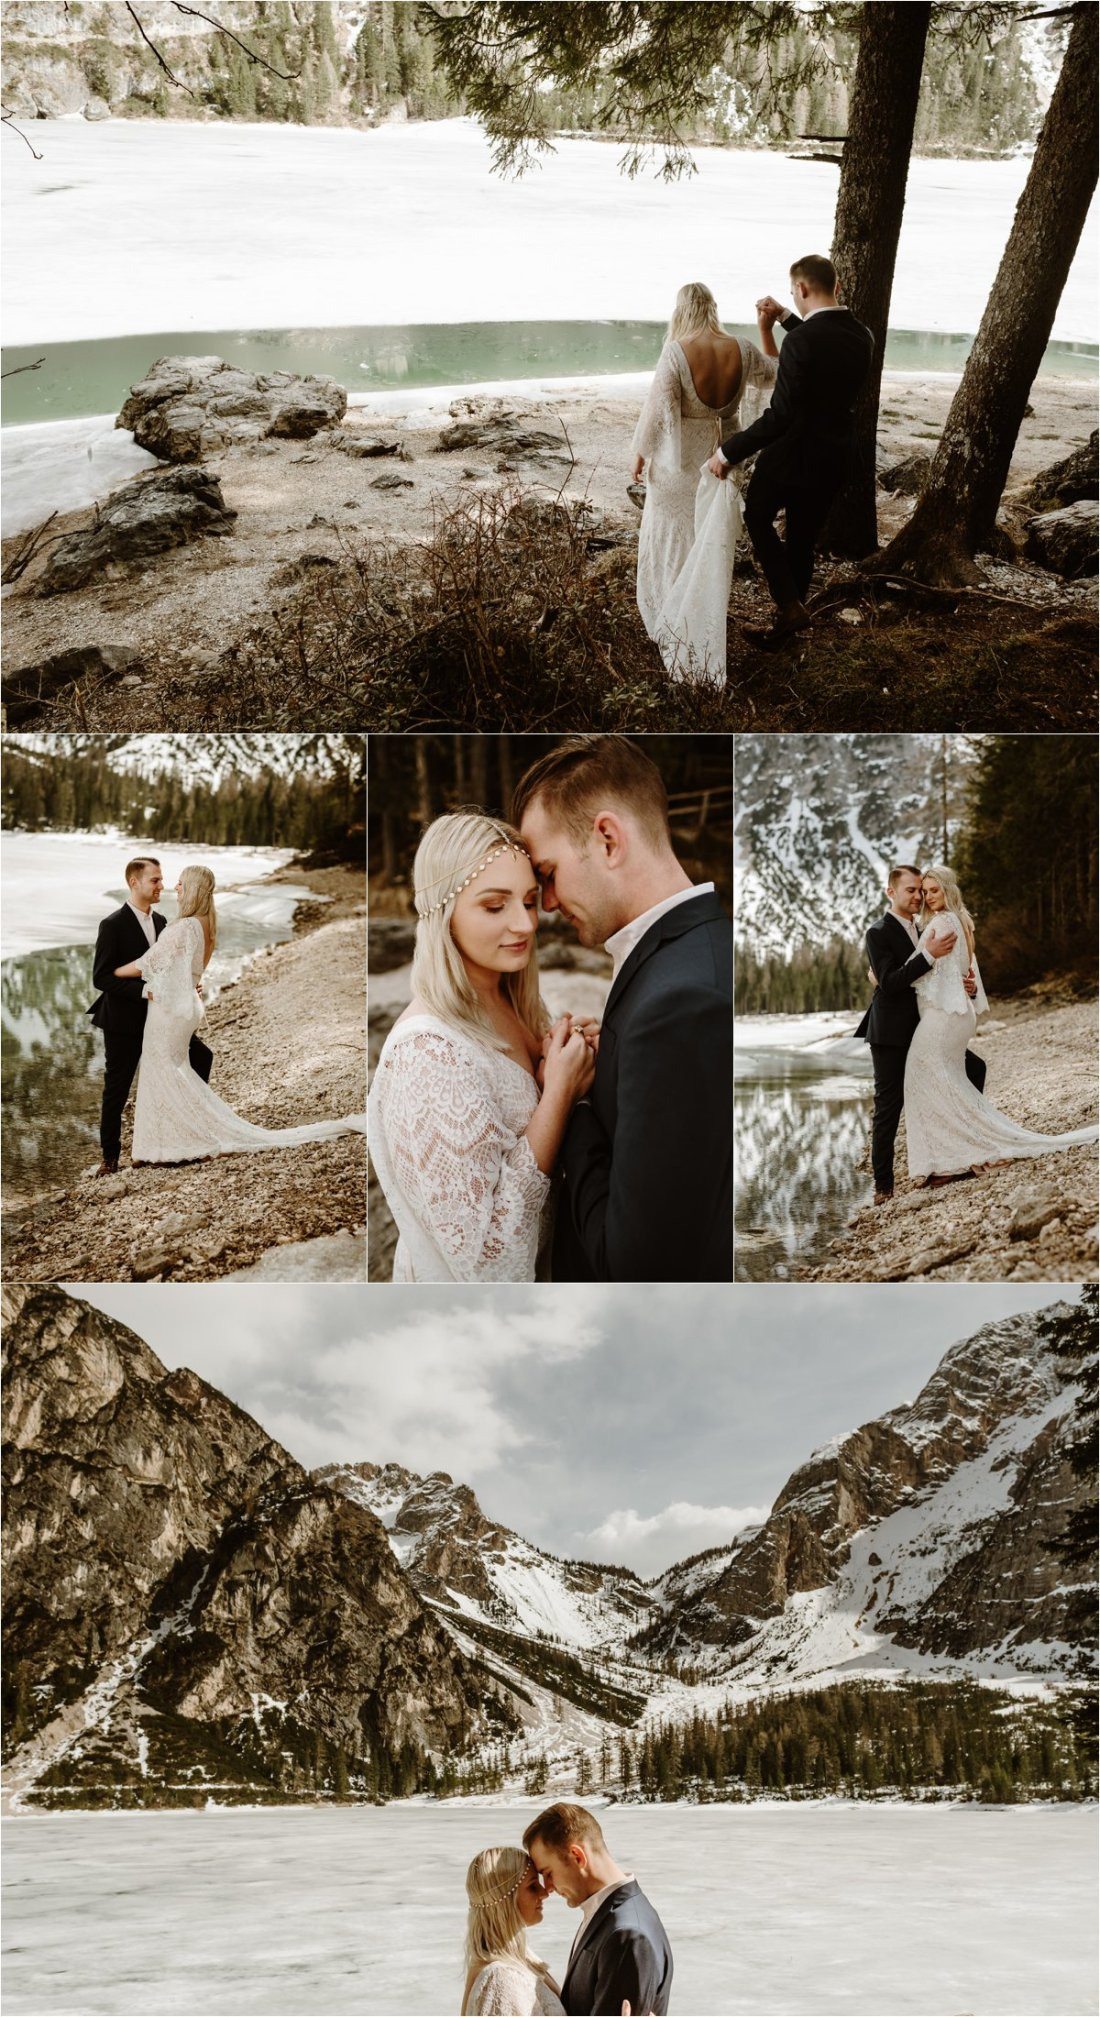 Erika & Nathan eloped at this stunning lake in the Italian Dolomites in Europe. Photos by Wild Connections Photography